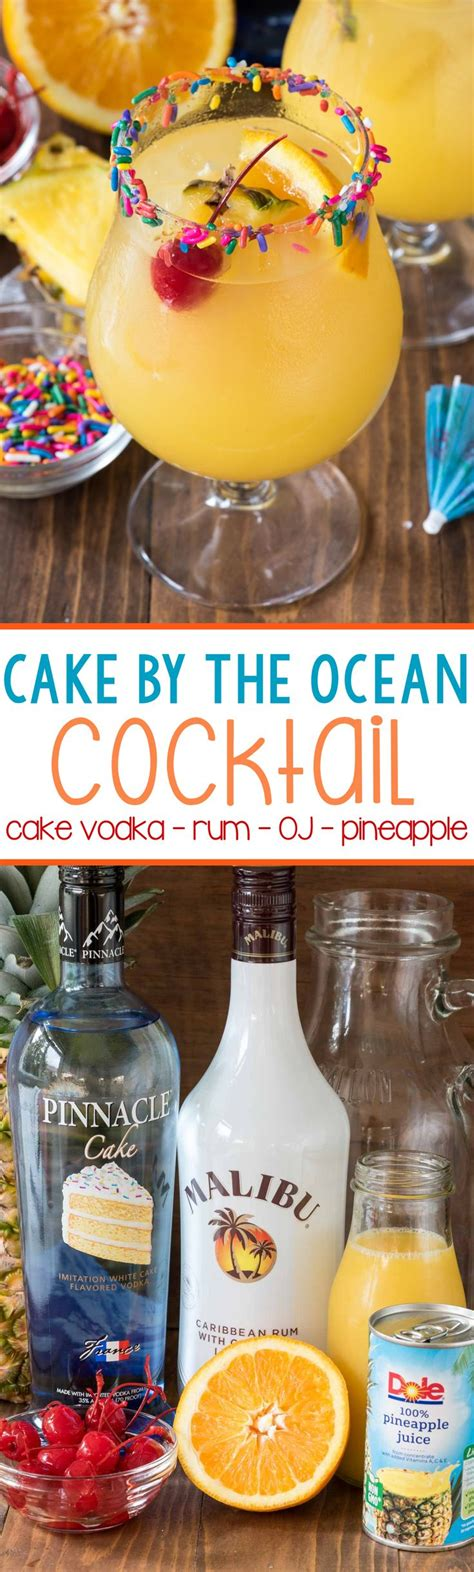 cocktail drinks names 2125 best images about cocktail names that make me laugh